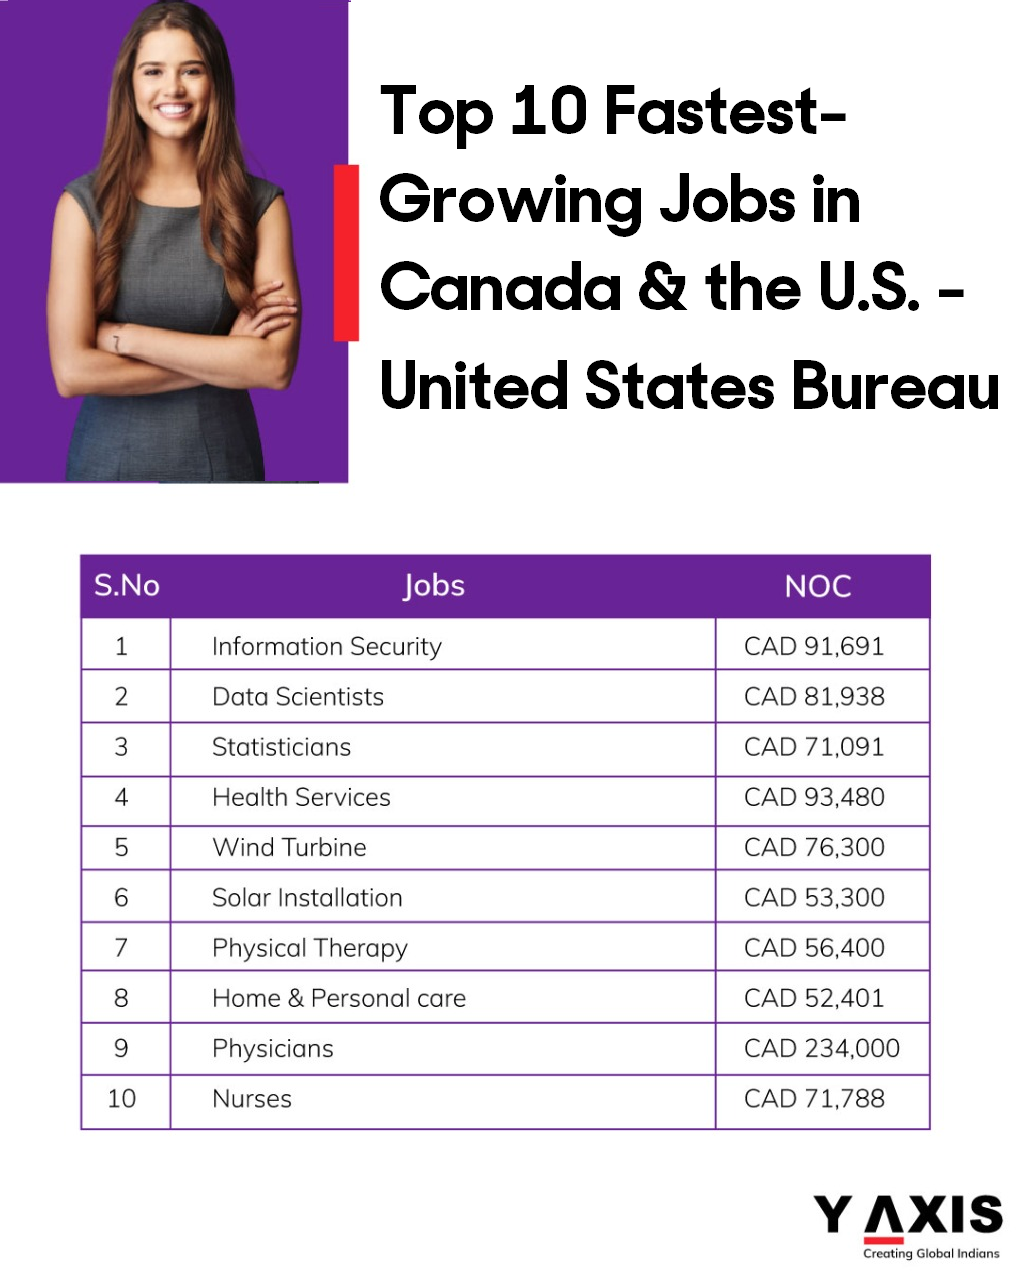 Top 10 Booming Jobs in Canada and the U.S.